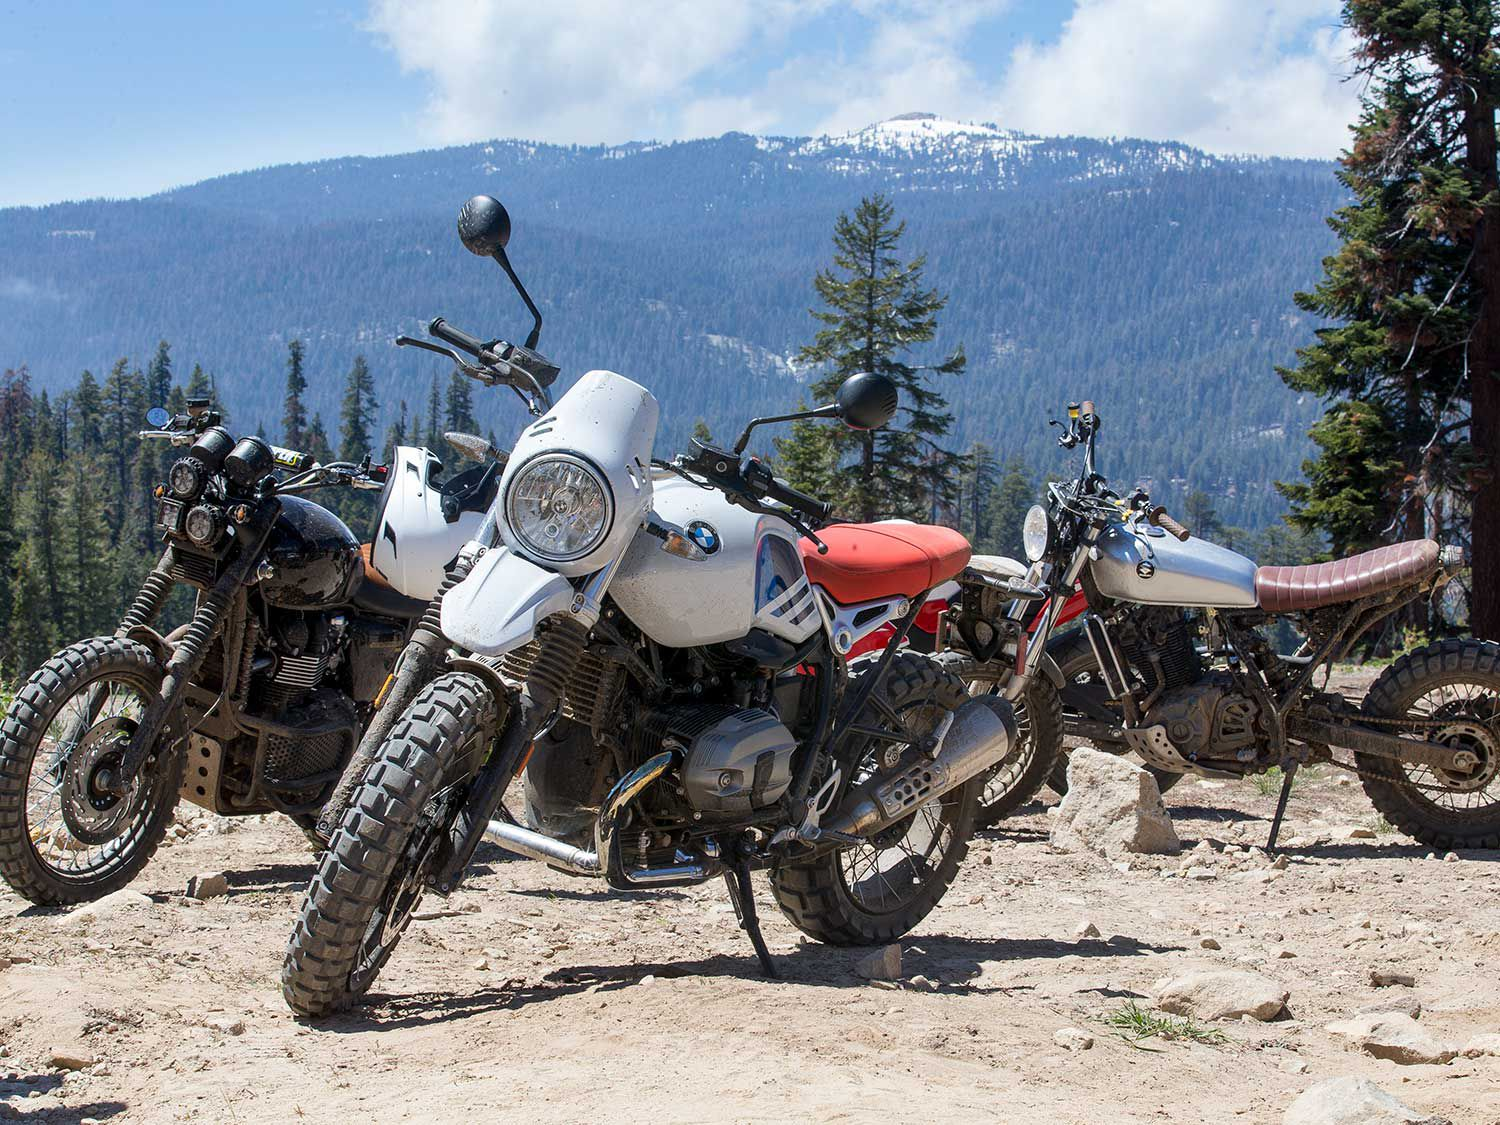 Men, women, children, scramblers, dual sports, dirt bikes—no matter who you are or what you ride, they are all welcome at HighPipe.